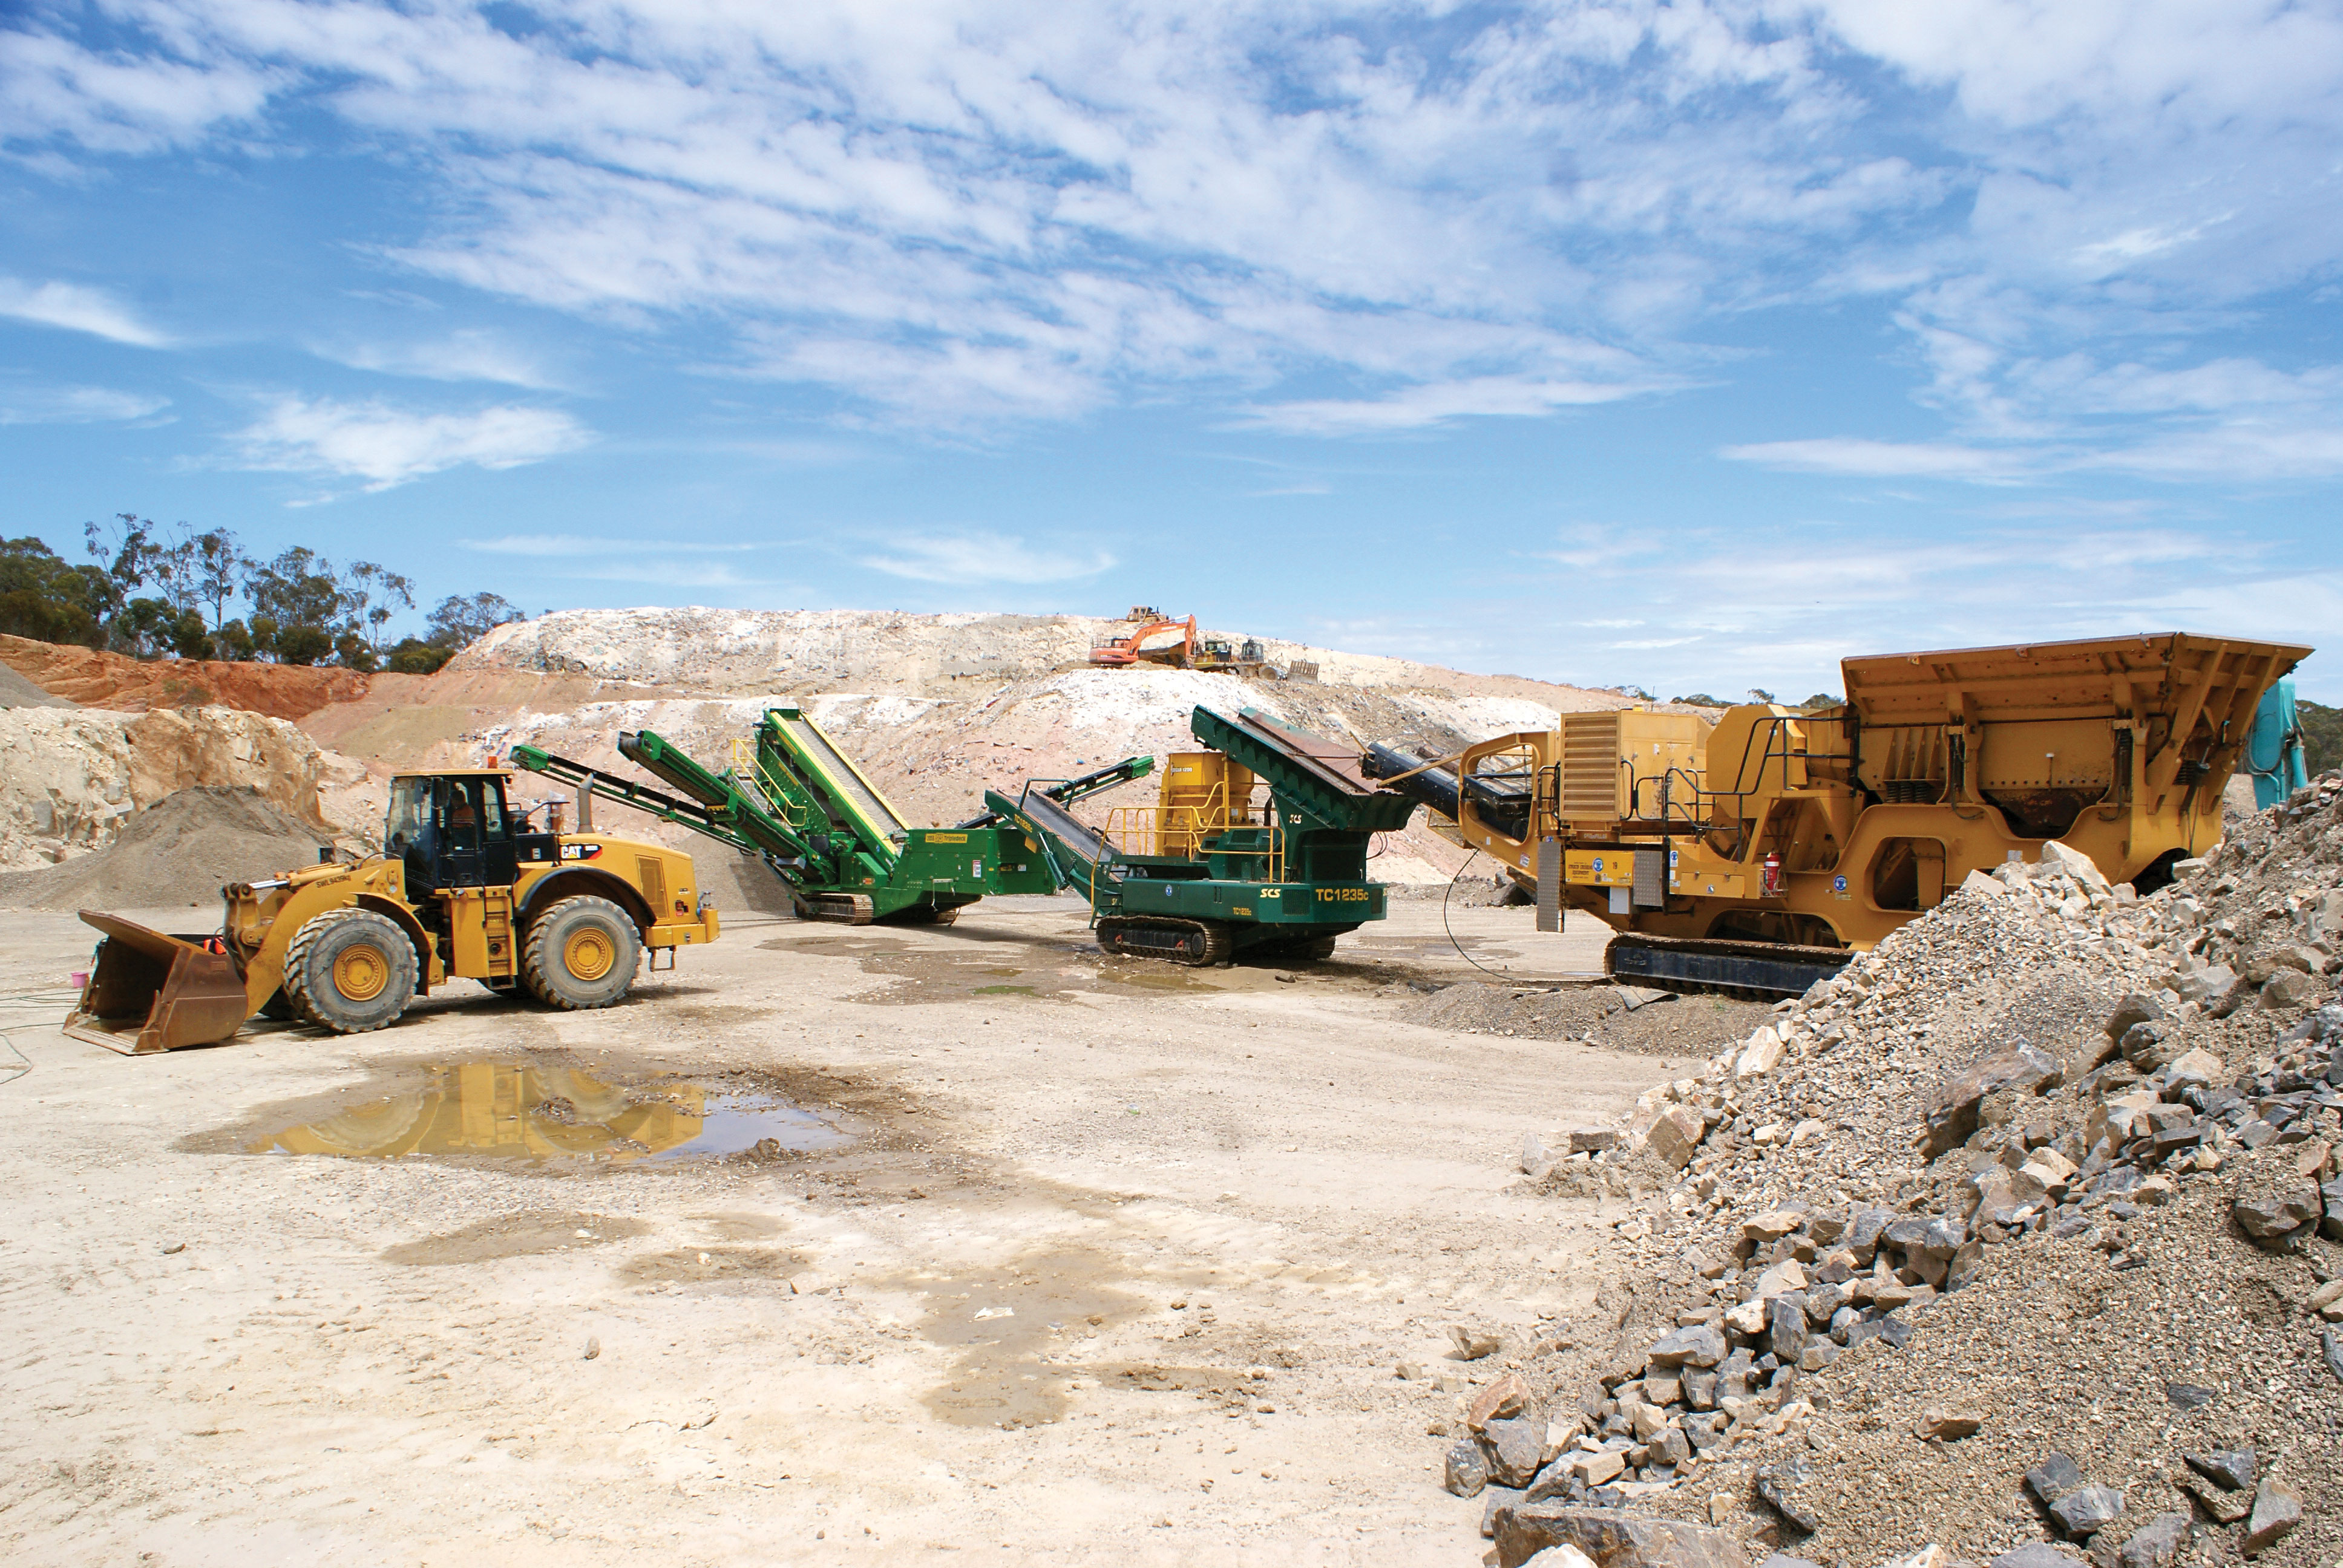 mobile crushing and screening plant Mobile crushing and screening plant 408 likes mobile crushing and screening plant factory dragon machinery web site : wwwdragonmachinerycom e-mail .